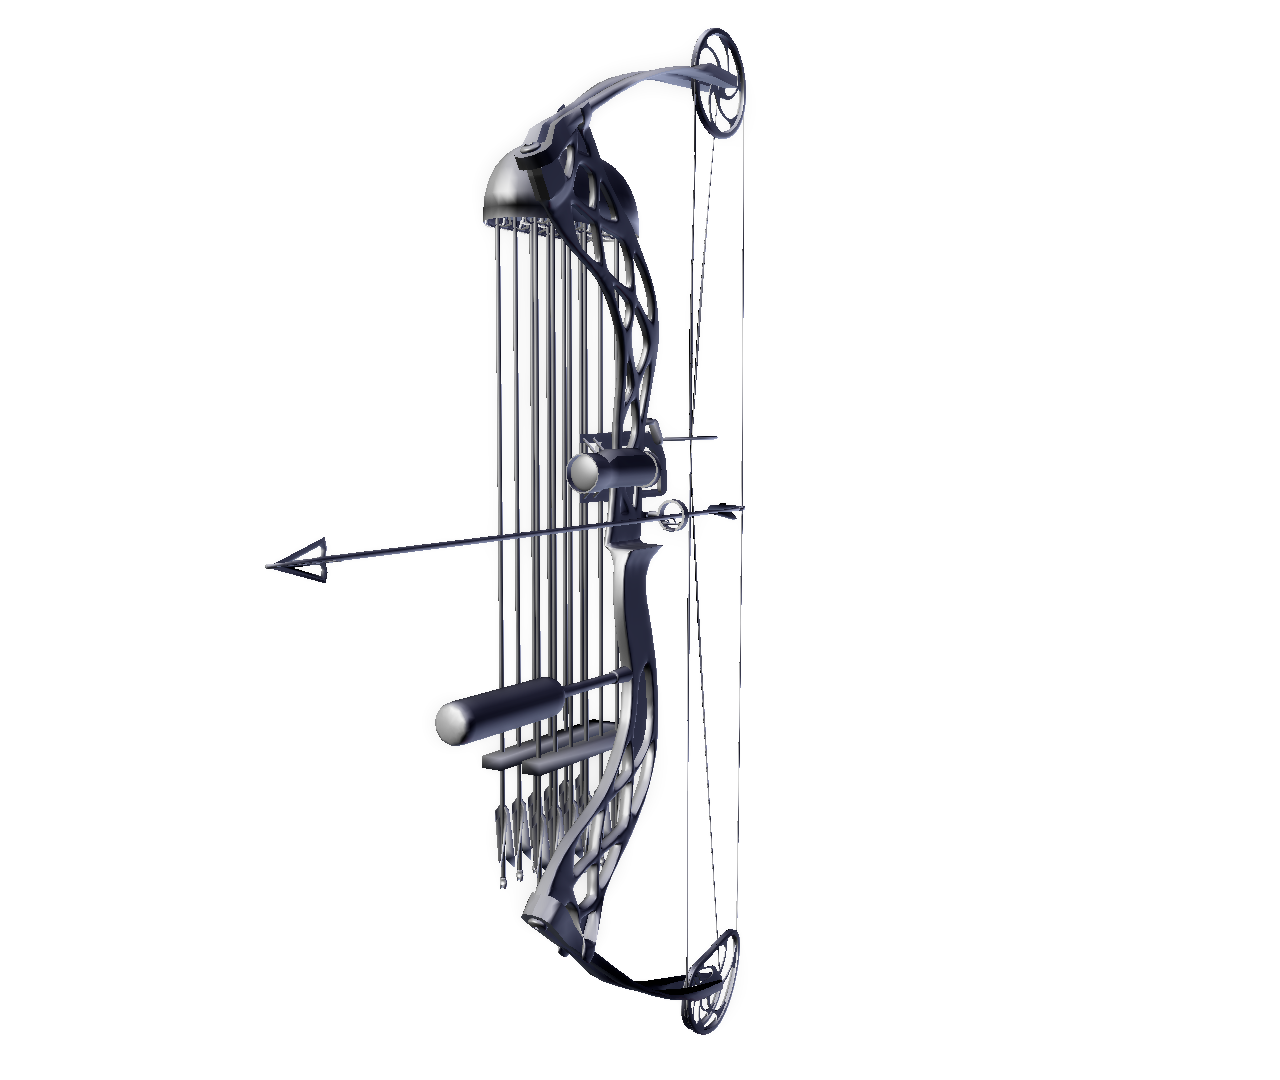 Compound Bow 3d Model In Projectiles 3dexport